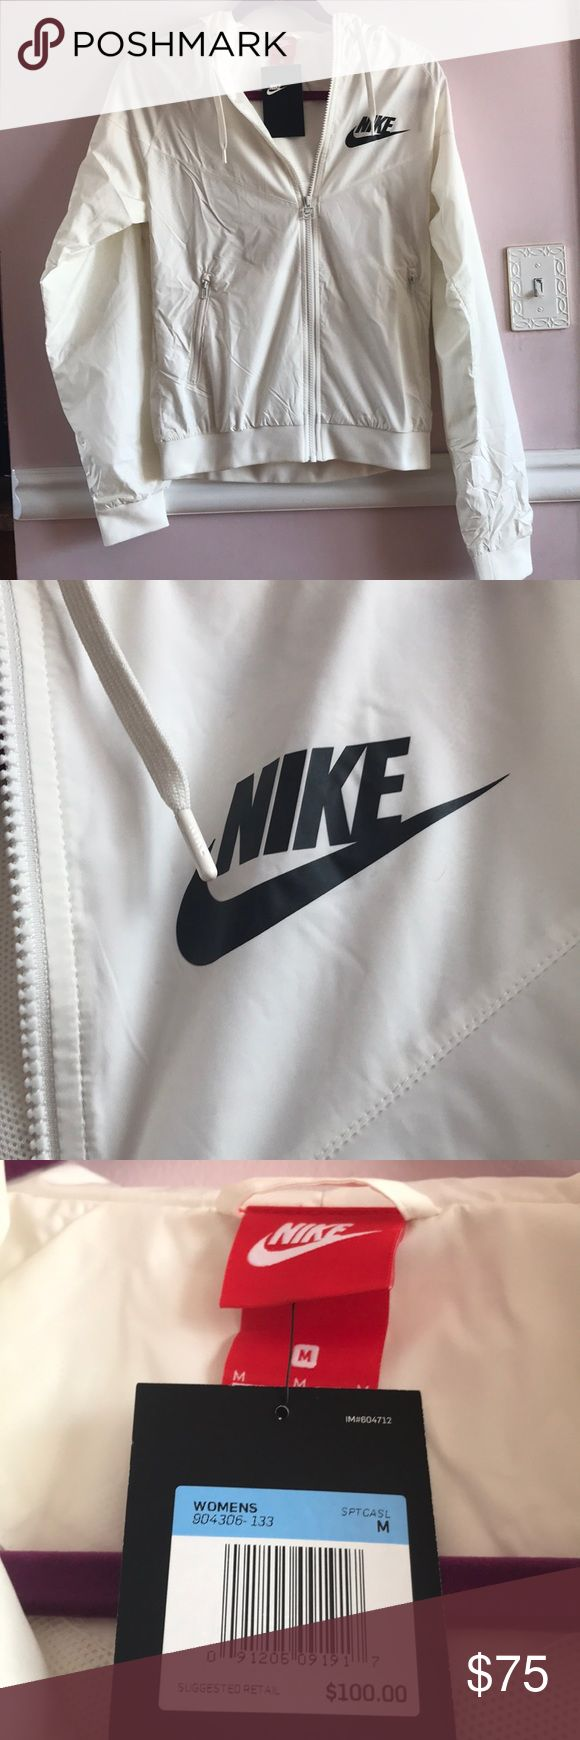 Nike Windrunner Jacket Woman's Nike windrunner Jacket Style: 904306-133 Off white with black New with original tags Size medium, but runs a full size small Nike Jackets & Coats